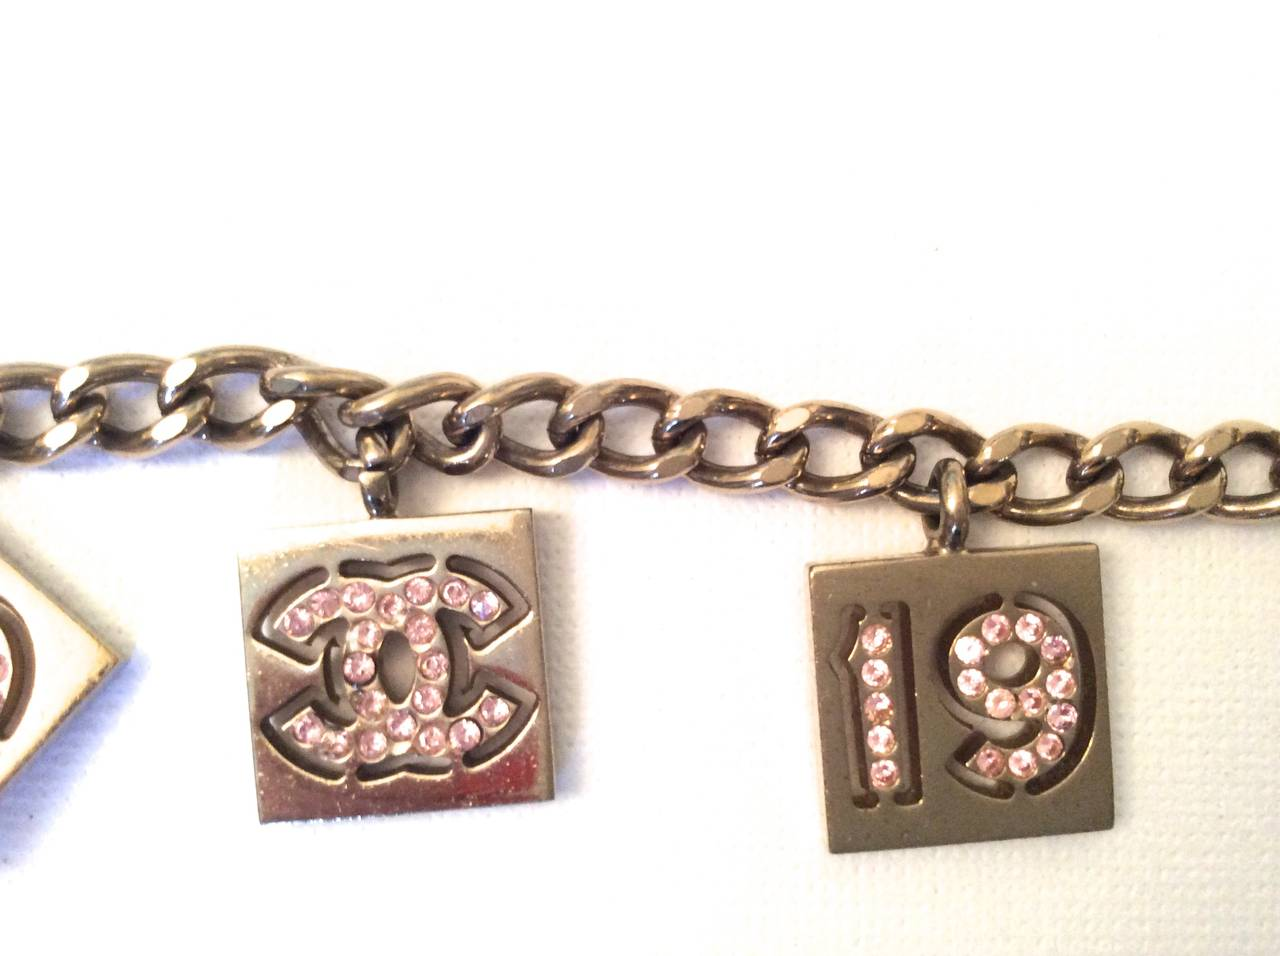 Vintage Chanel Gold Tone with Pink Rhinestone Charm Bracelet For Sale 1